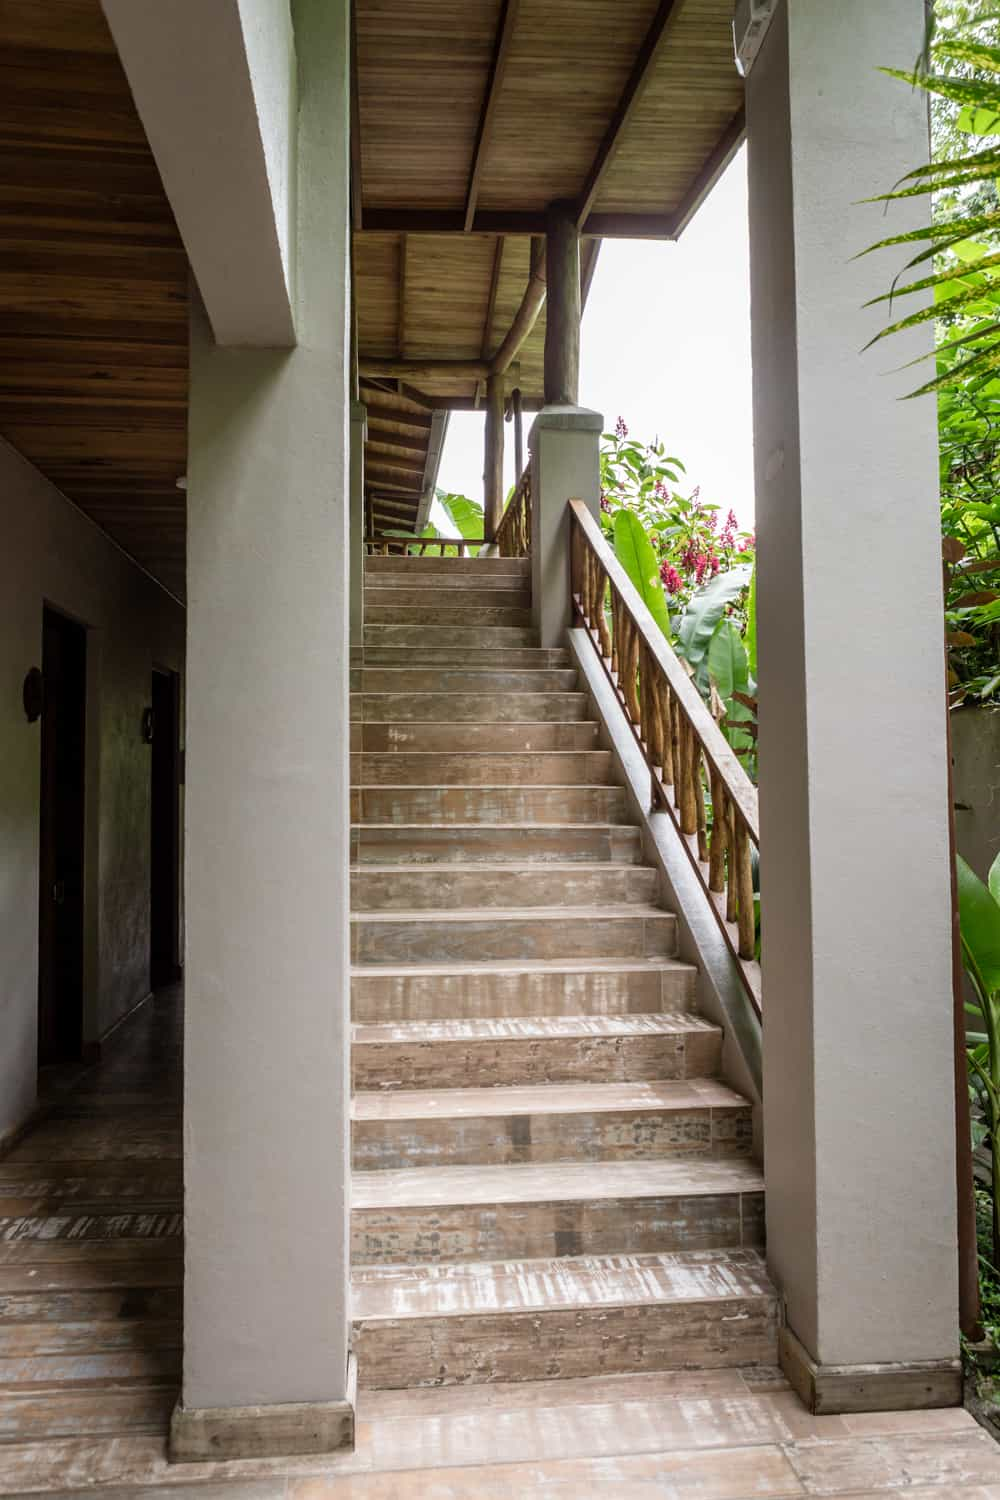 Stairway leading to Lost Iguana Honeymoon Suite.